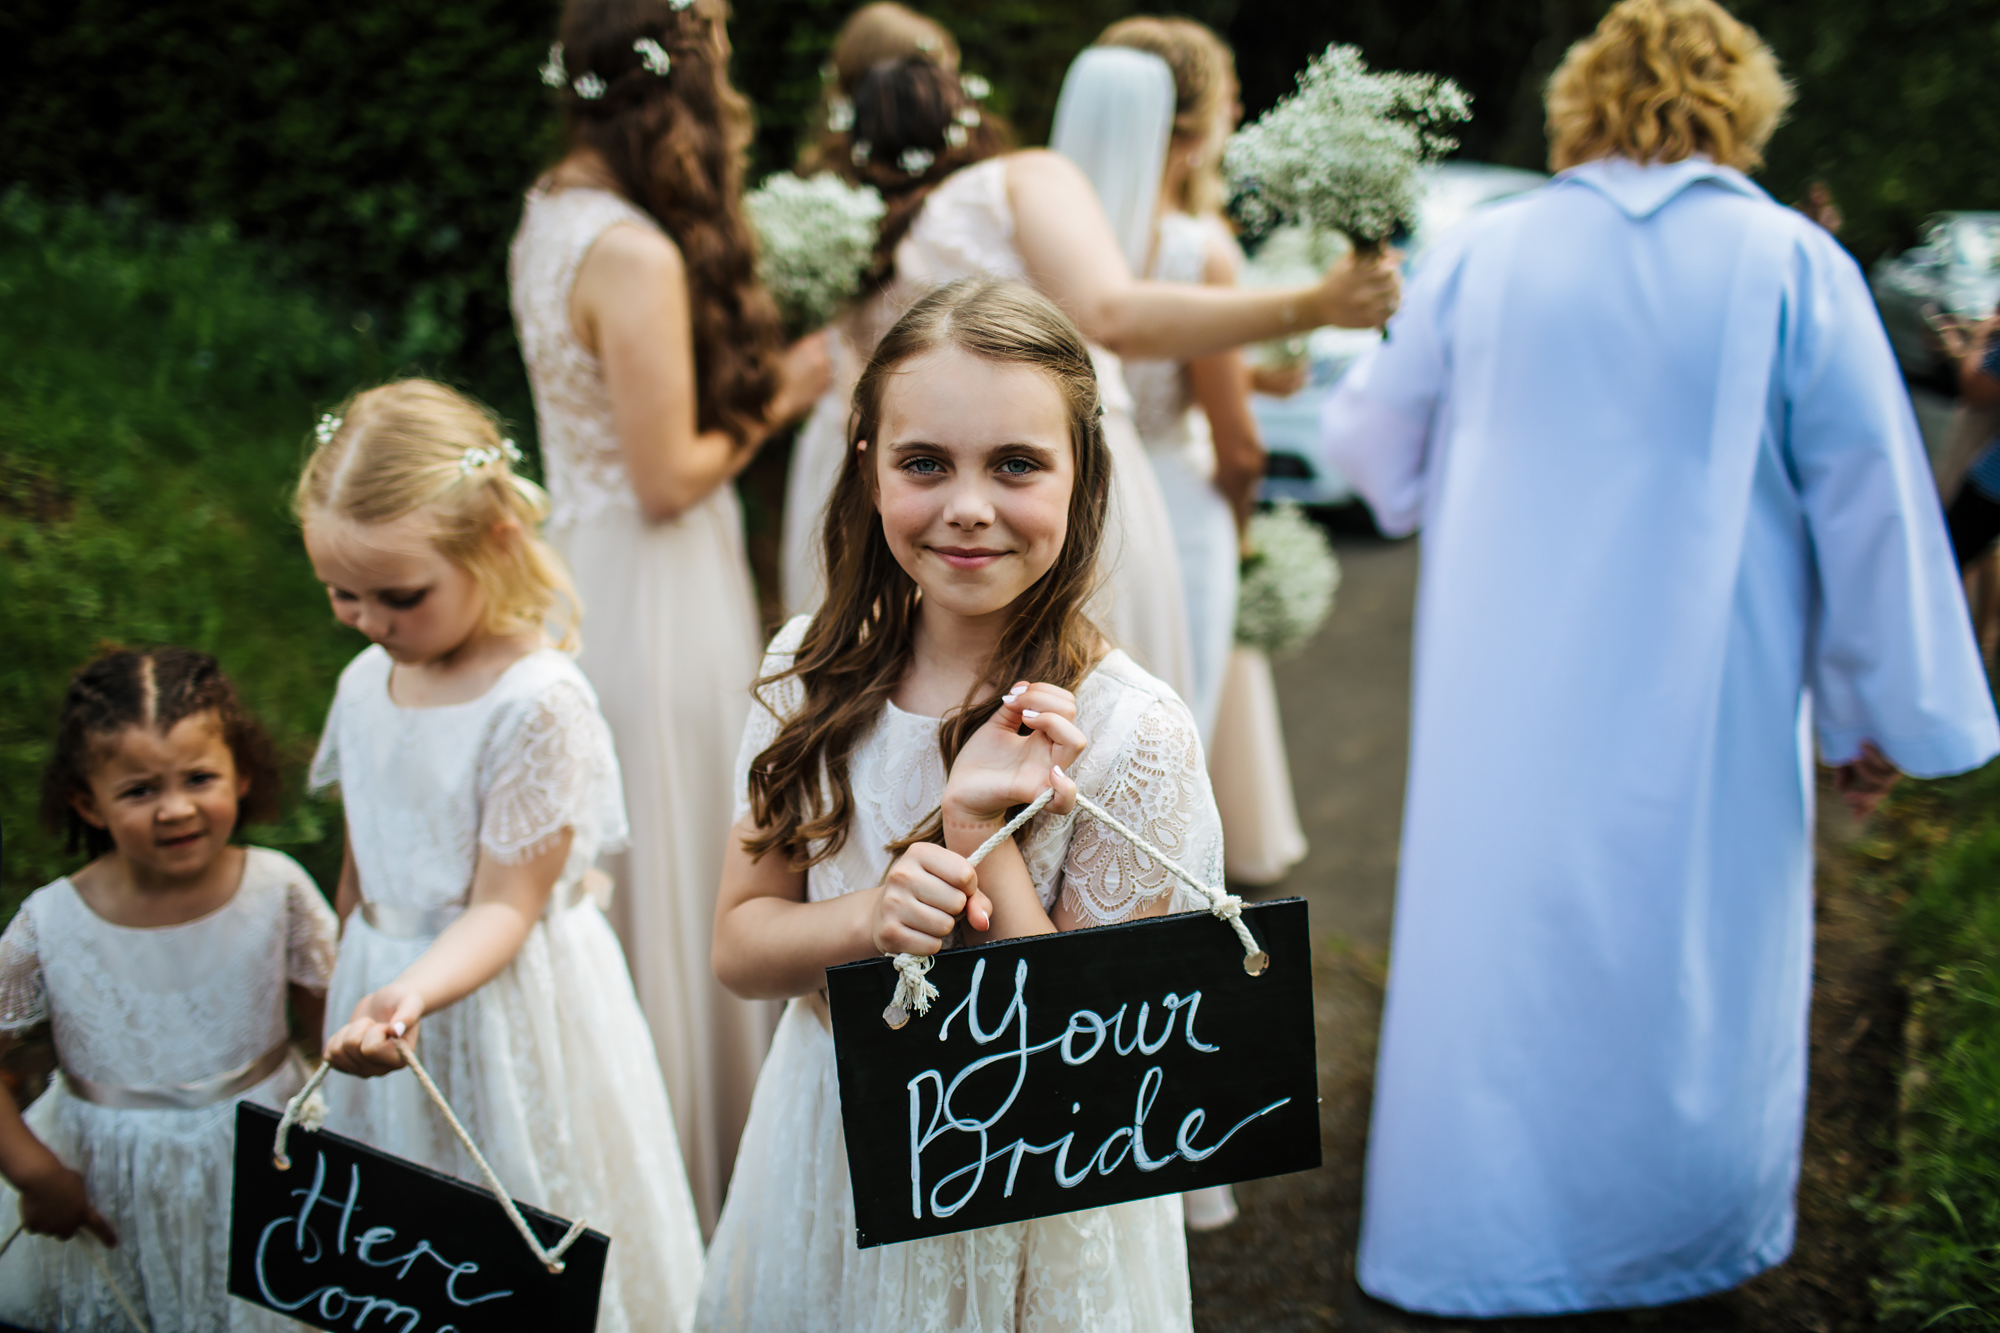 Young bridesmaid outside a church wedding